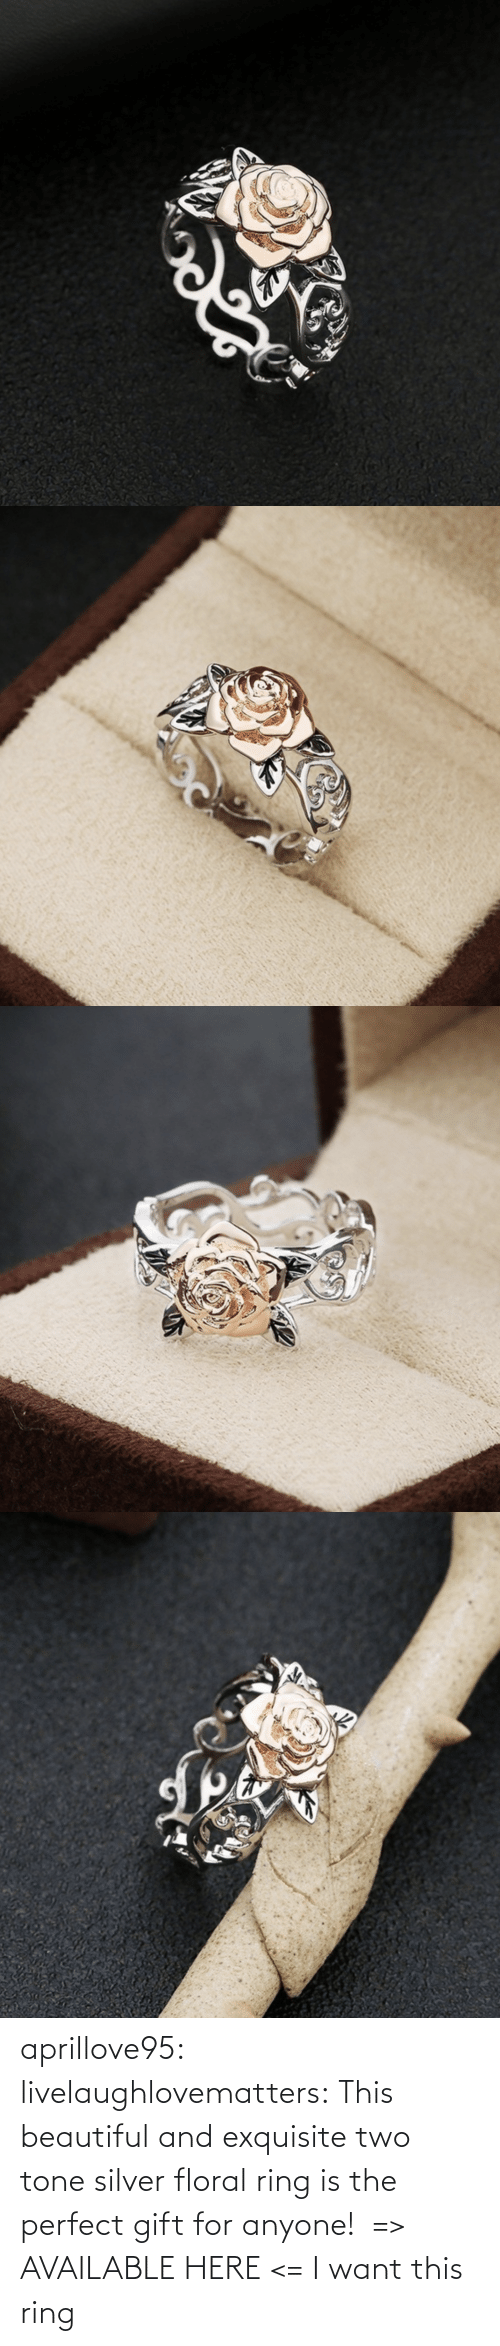 two: aprillove95:  livelaughlovematters:  This beautiful and exquisite two tone silver floral ring is the perfect gift for anyone! => AVAILABLE HERE <=    I want this ring